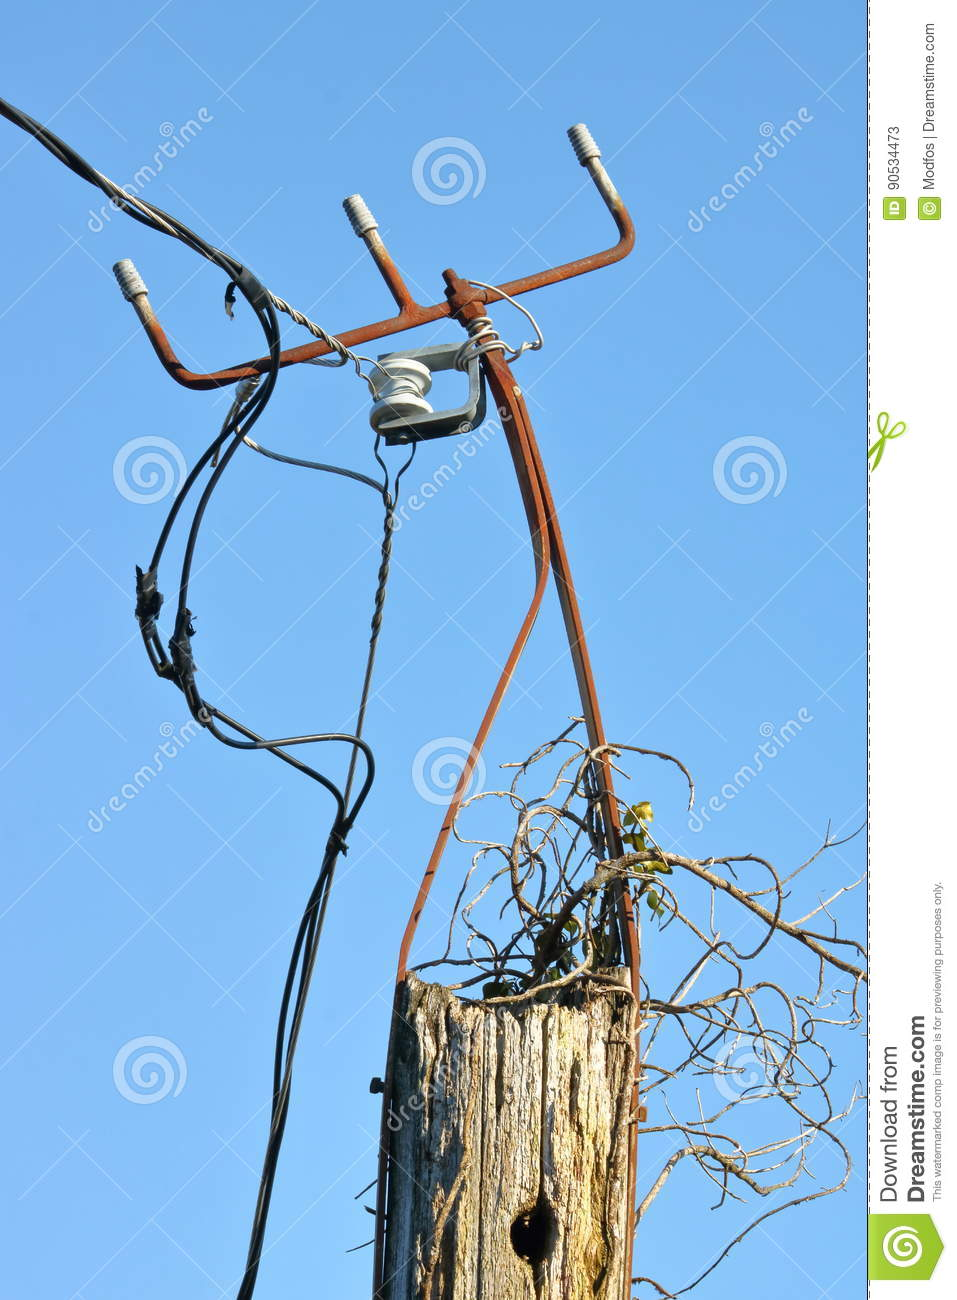 Dangerous Use Of Electric Wiring Stock Image - Image of ... on